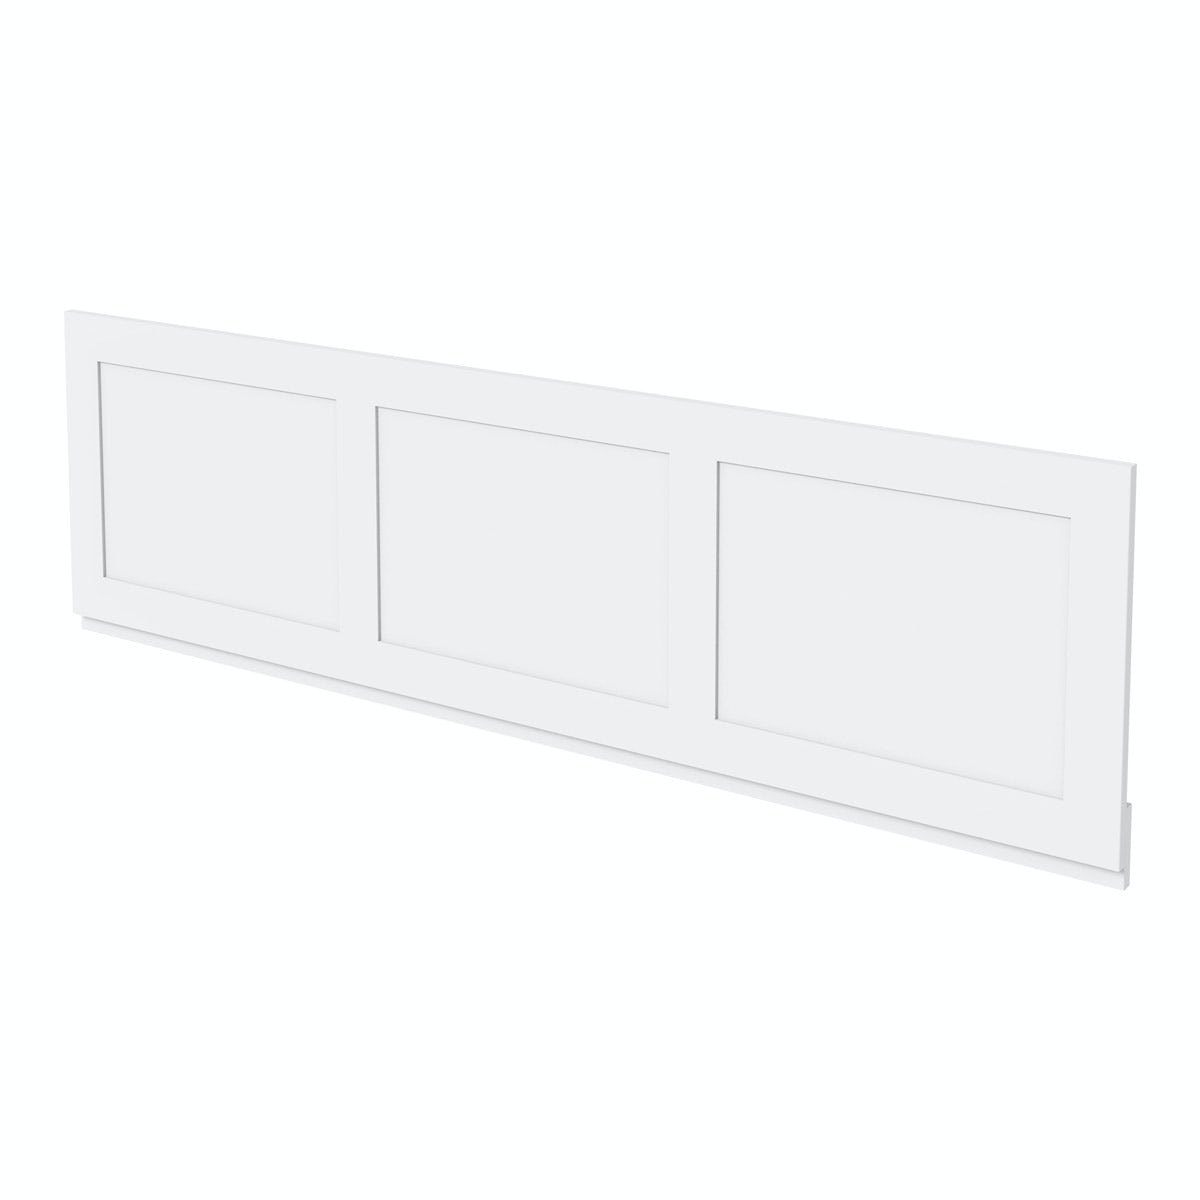 The Bath Co. Camberley white wooden straight bath front panel 1700mm